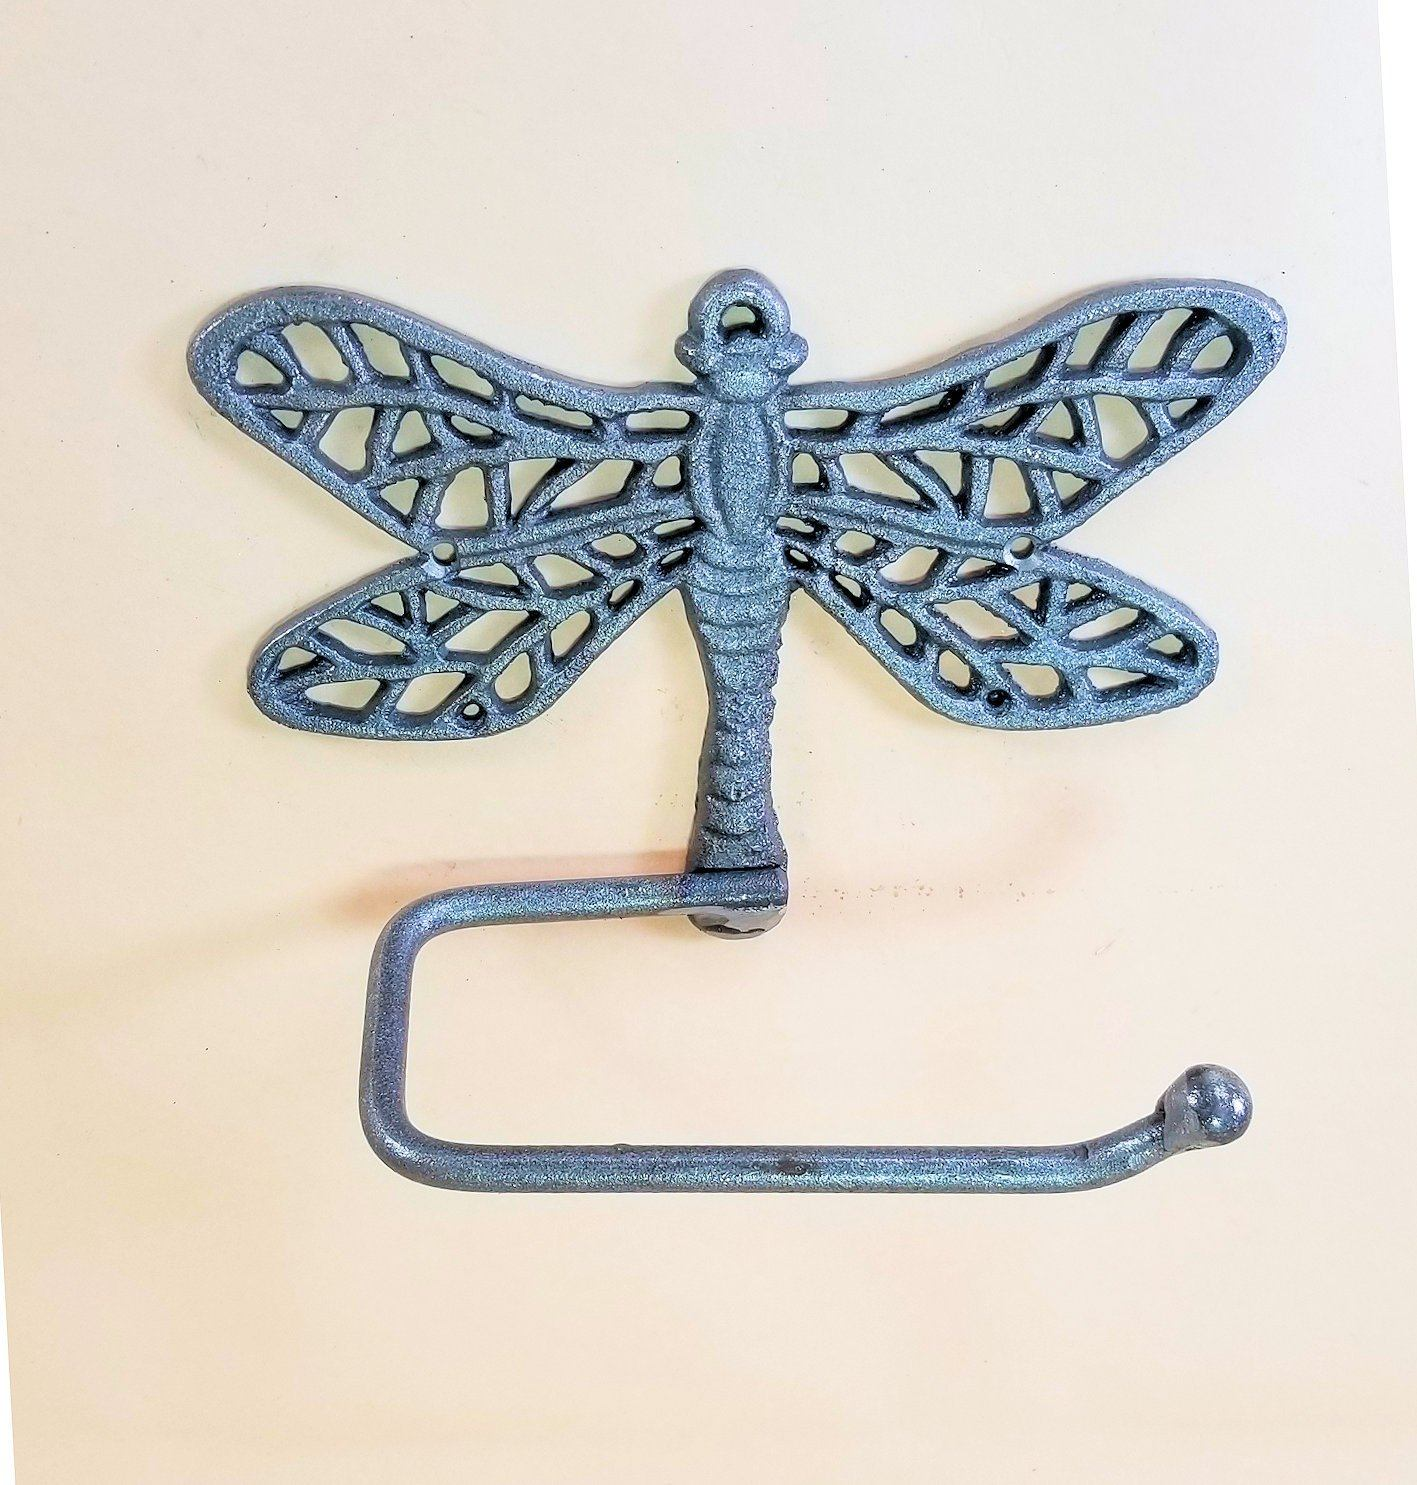 cast iron unpainted Dragonfly toilet paper holder carvers olde iron